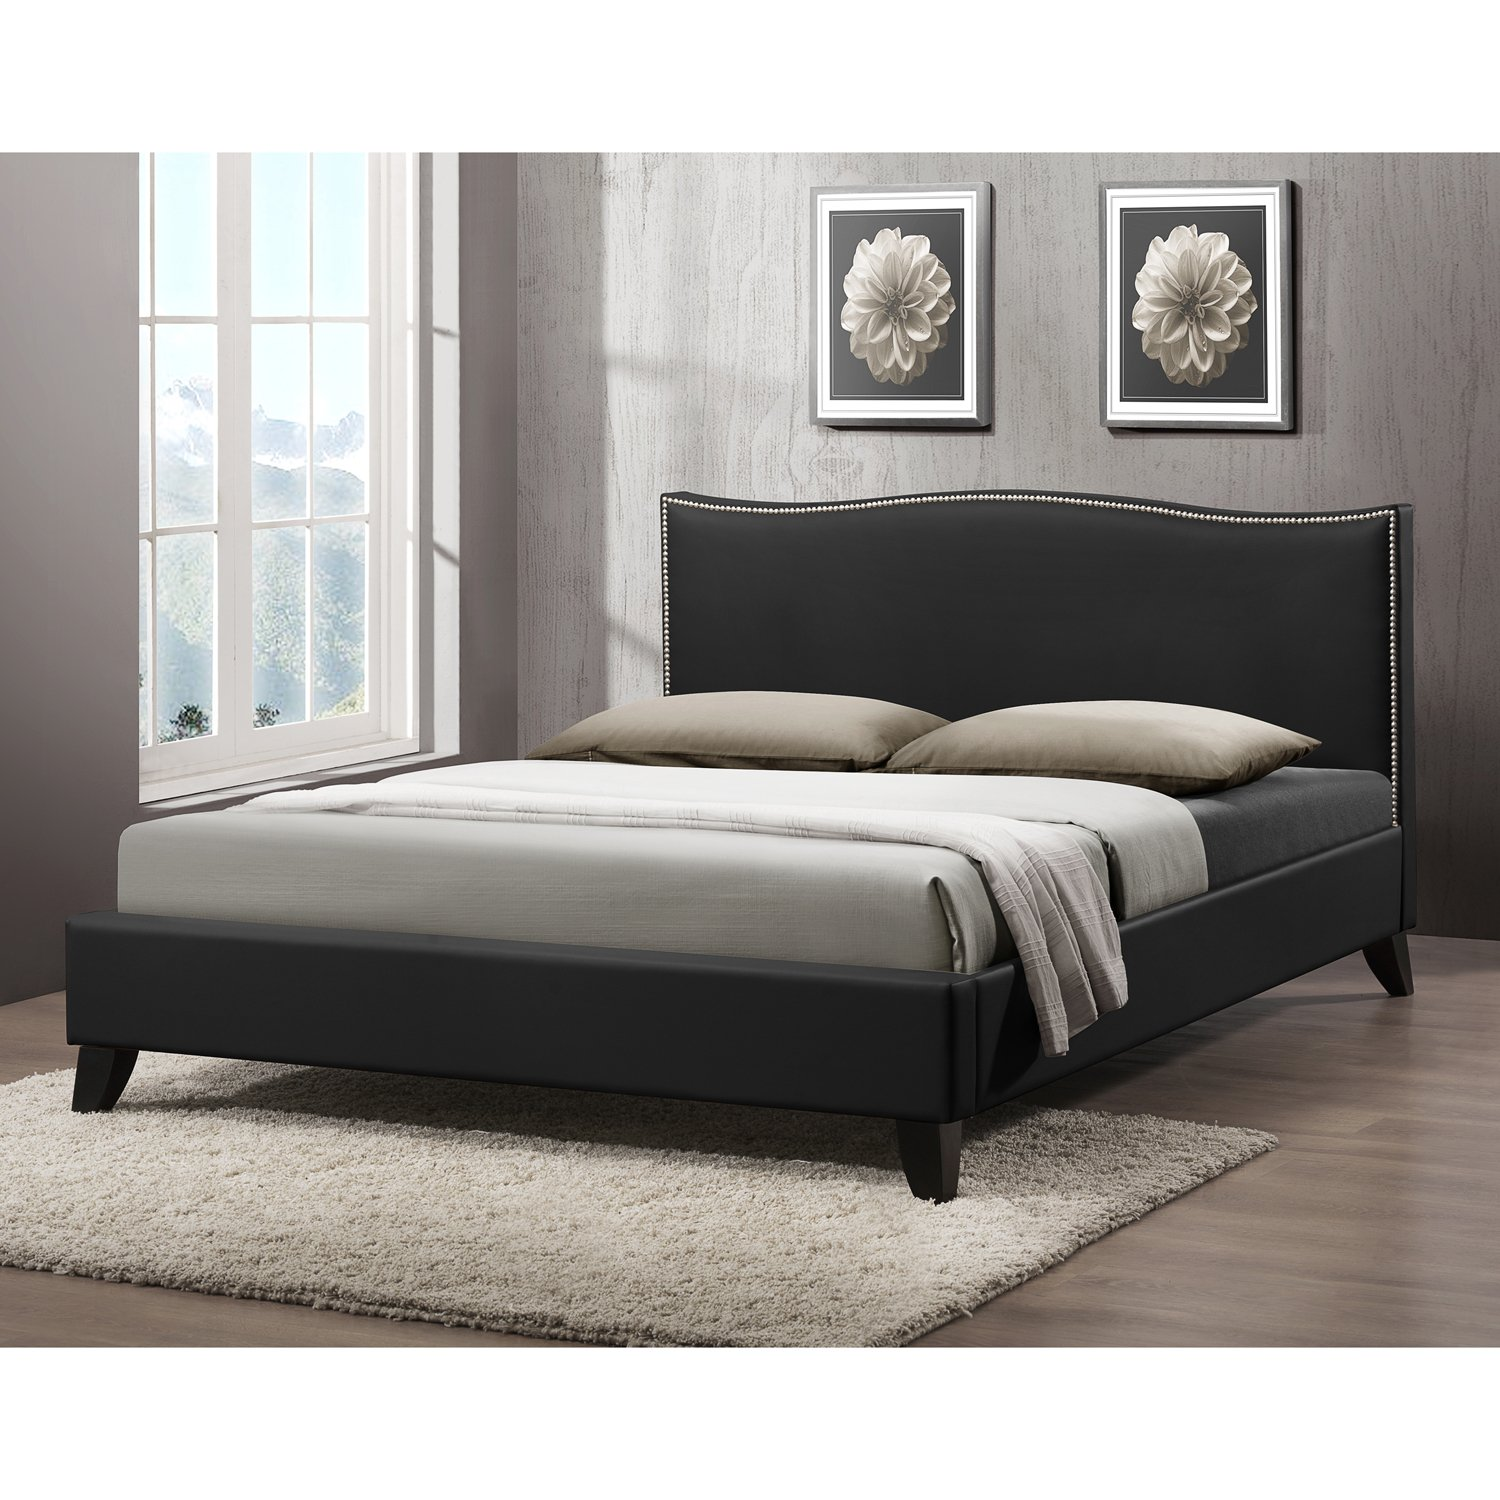 amazoncom baxton studio cffullblack battersby modern bed  - amazoncom baxton studio cffullblack battersby modern bed withupholstered headboard full black kitchen  dining